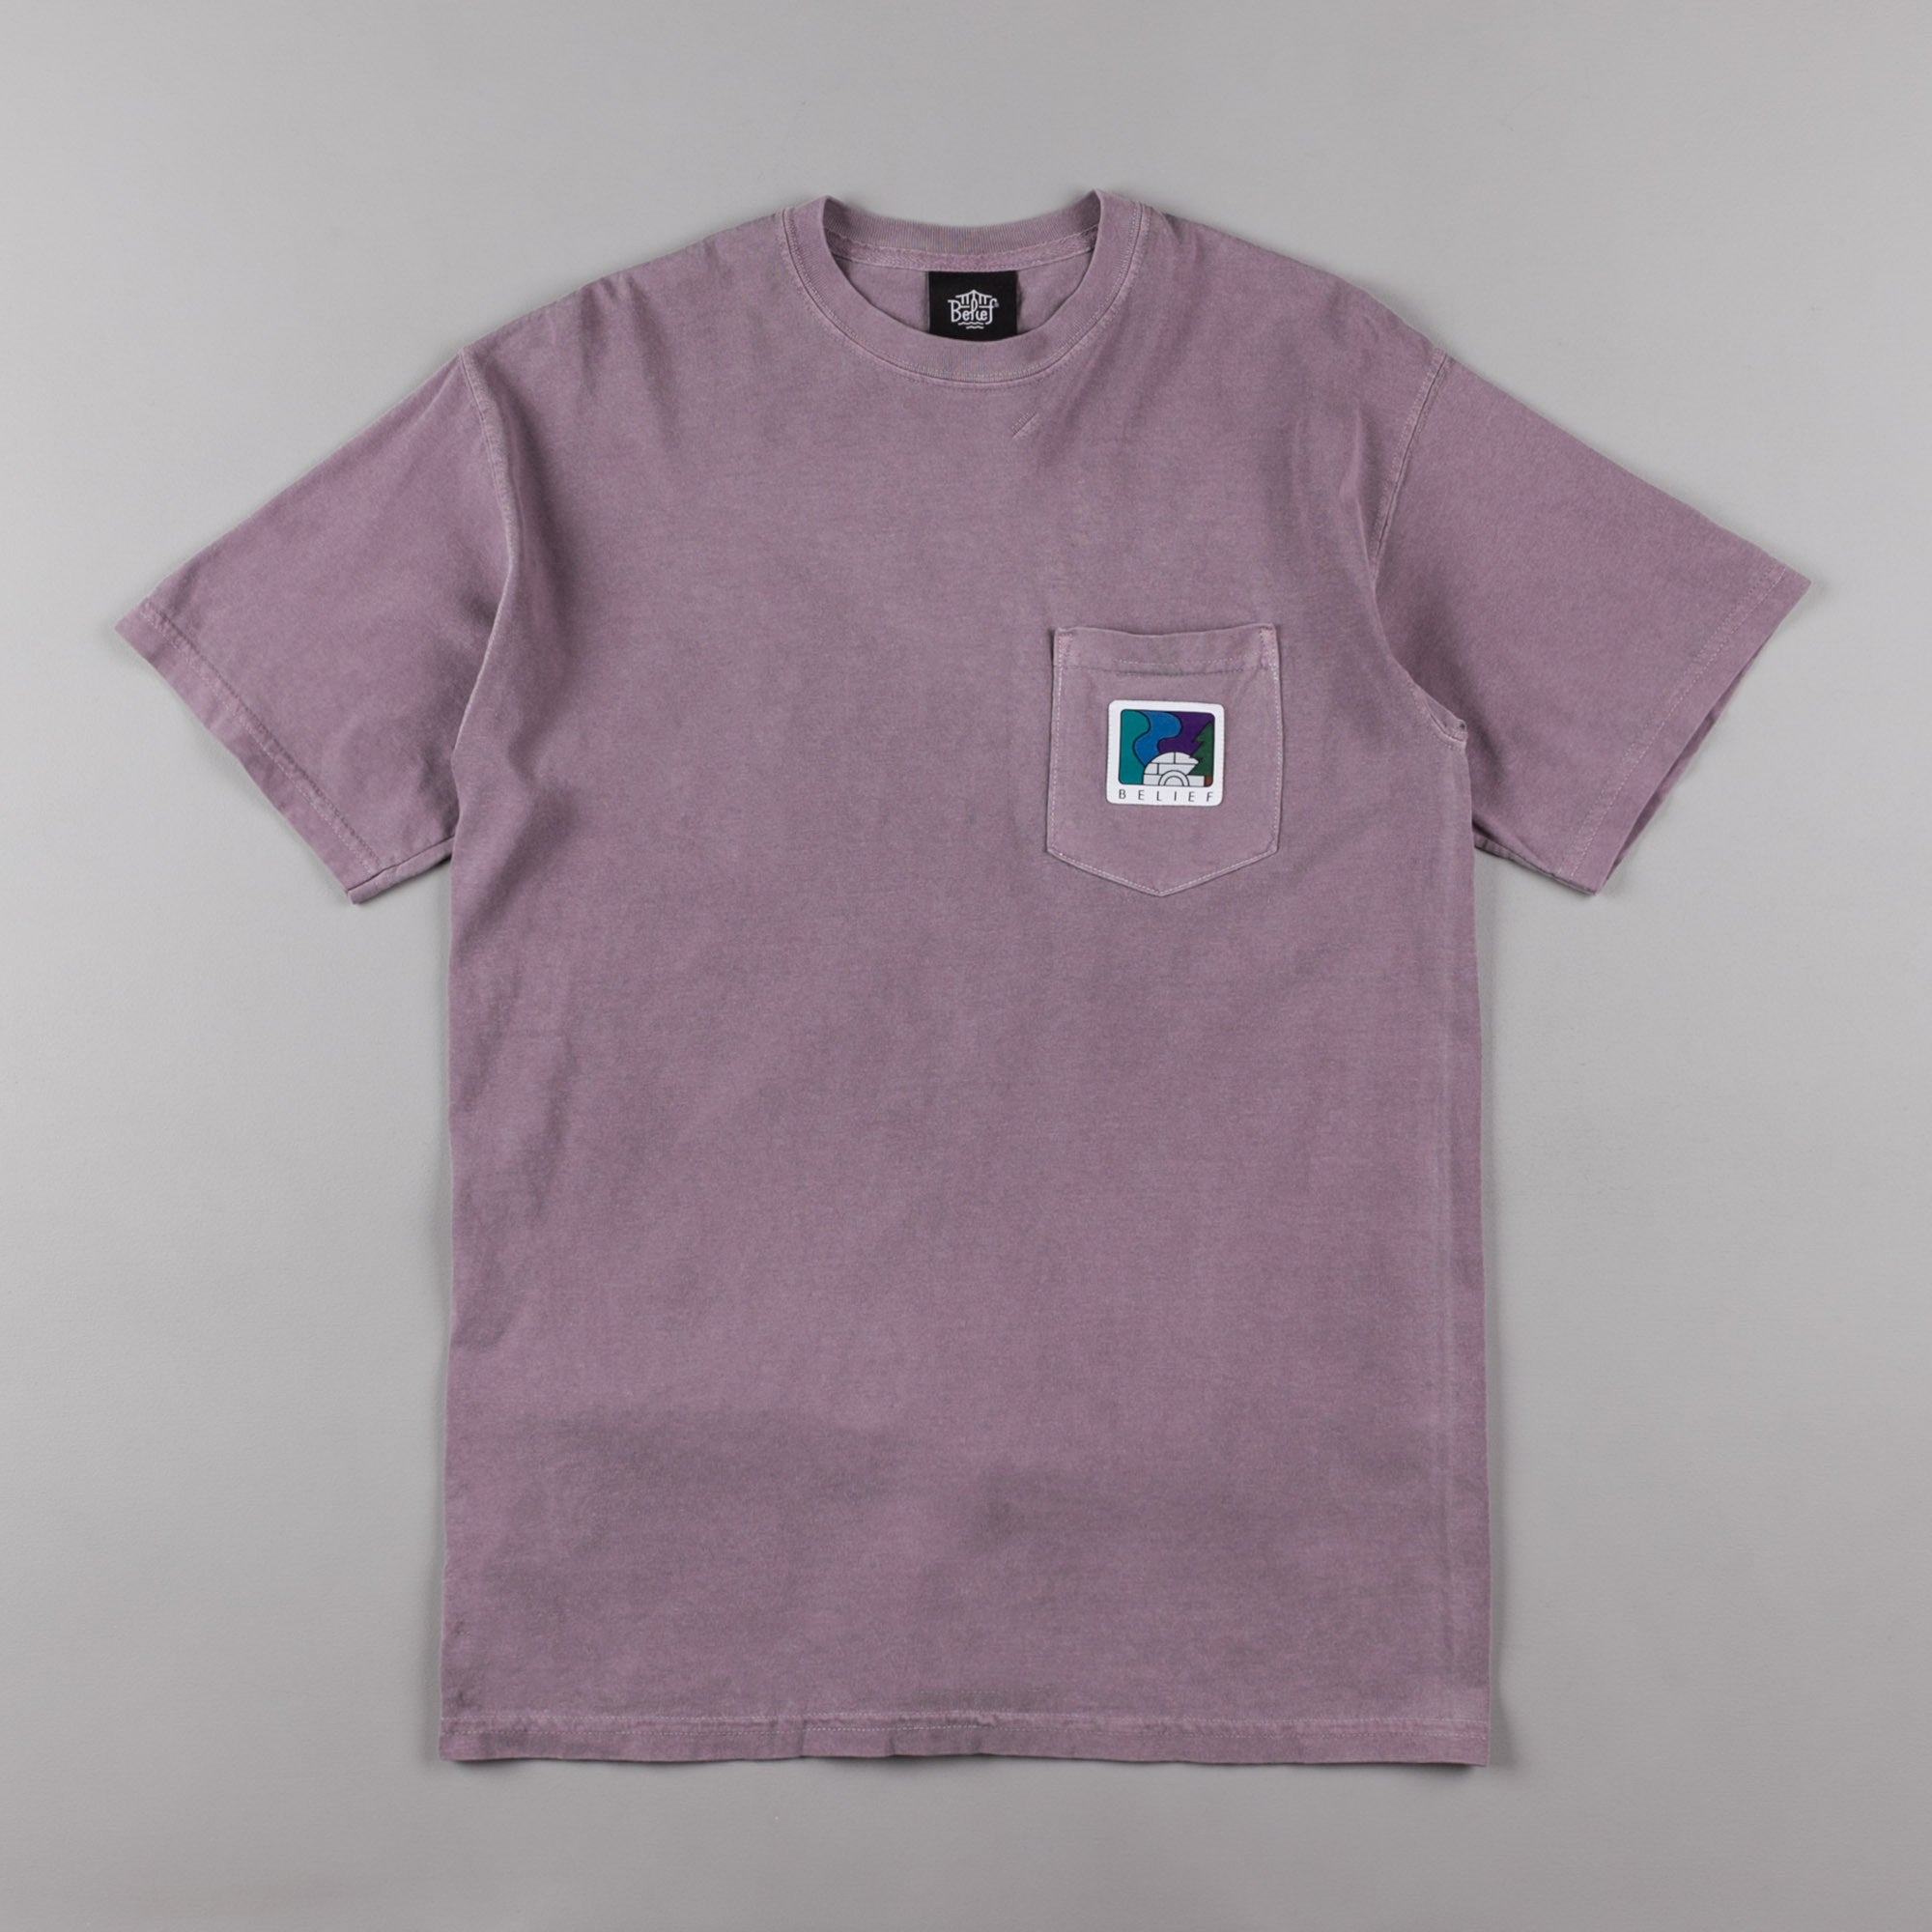 Belief Northern Lights Pocket T-Shirt - Clay